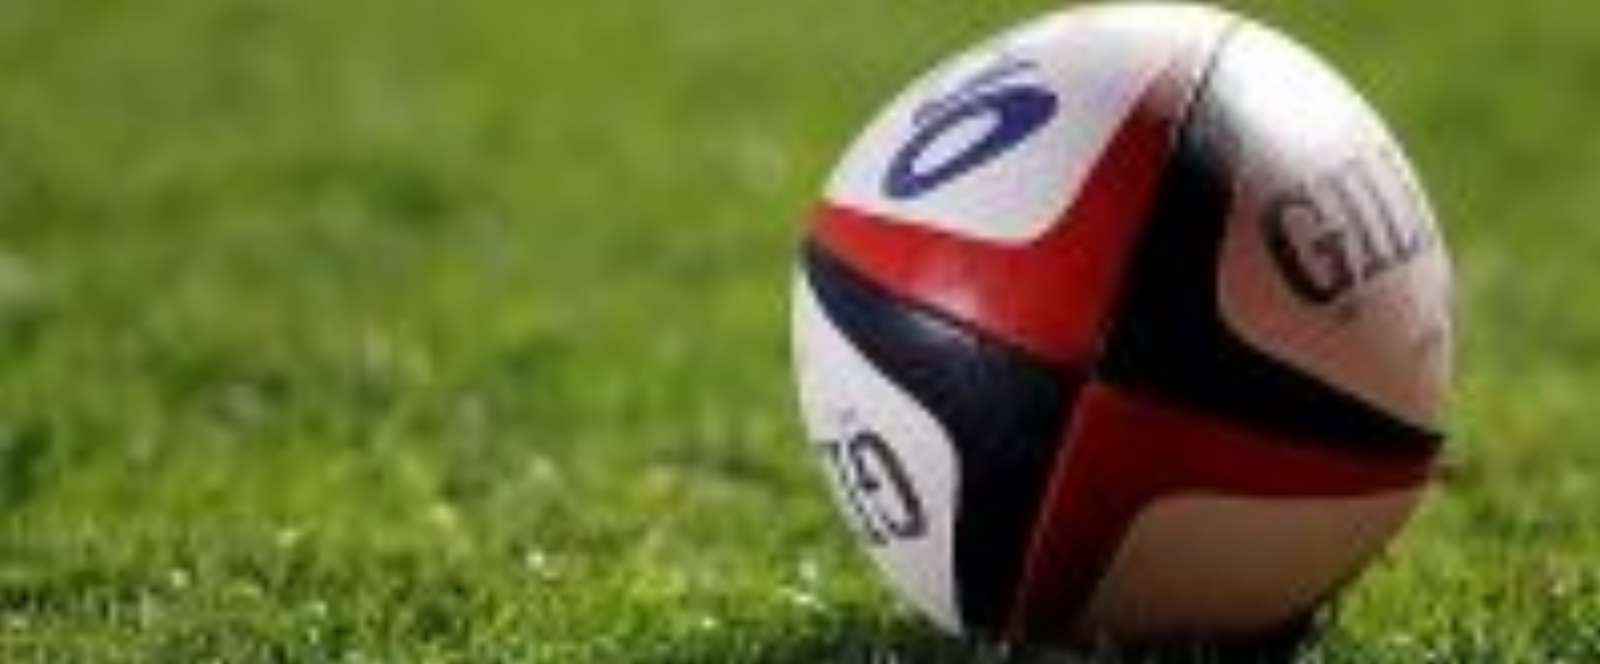 Sports-Rugby